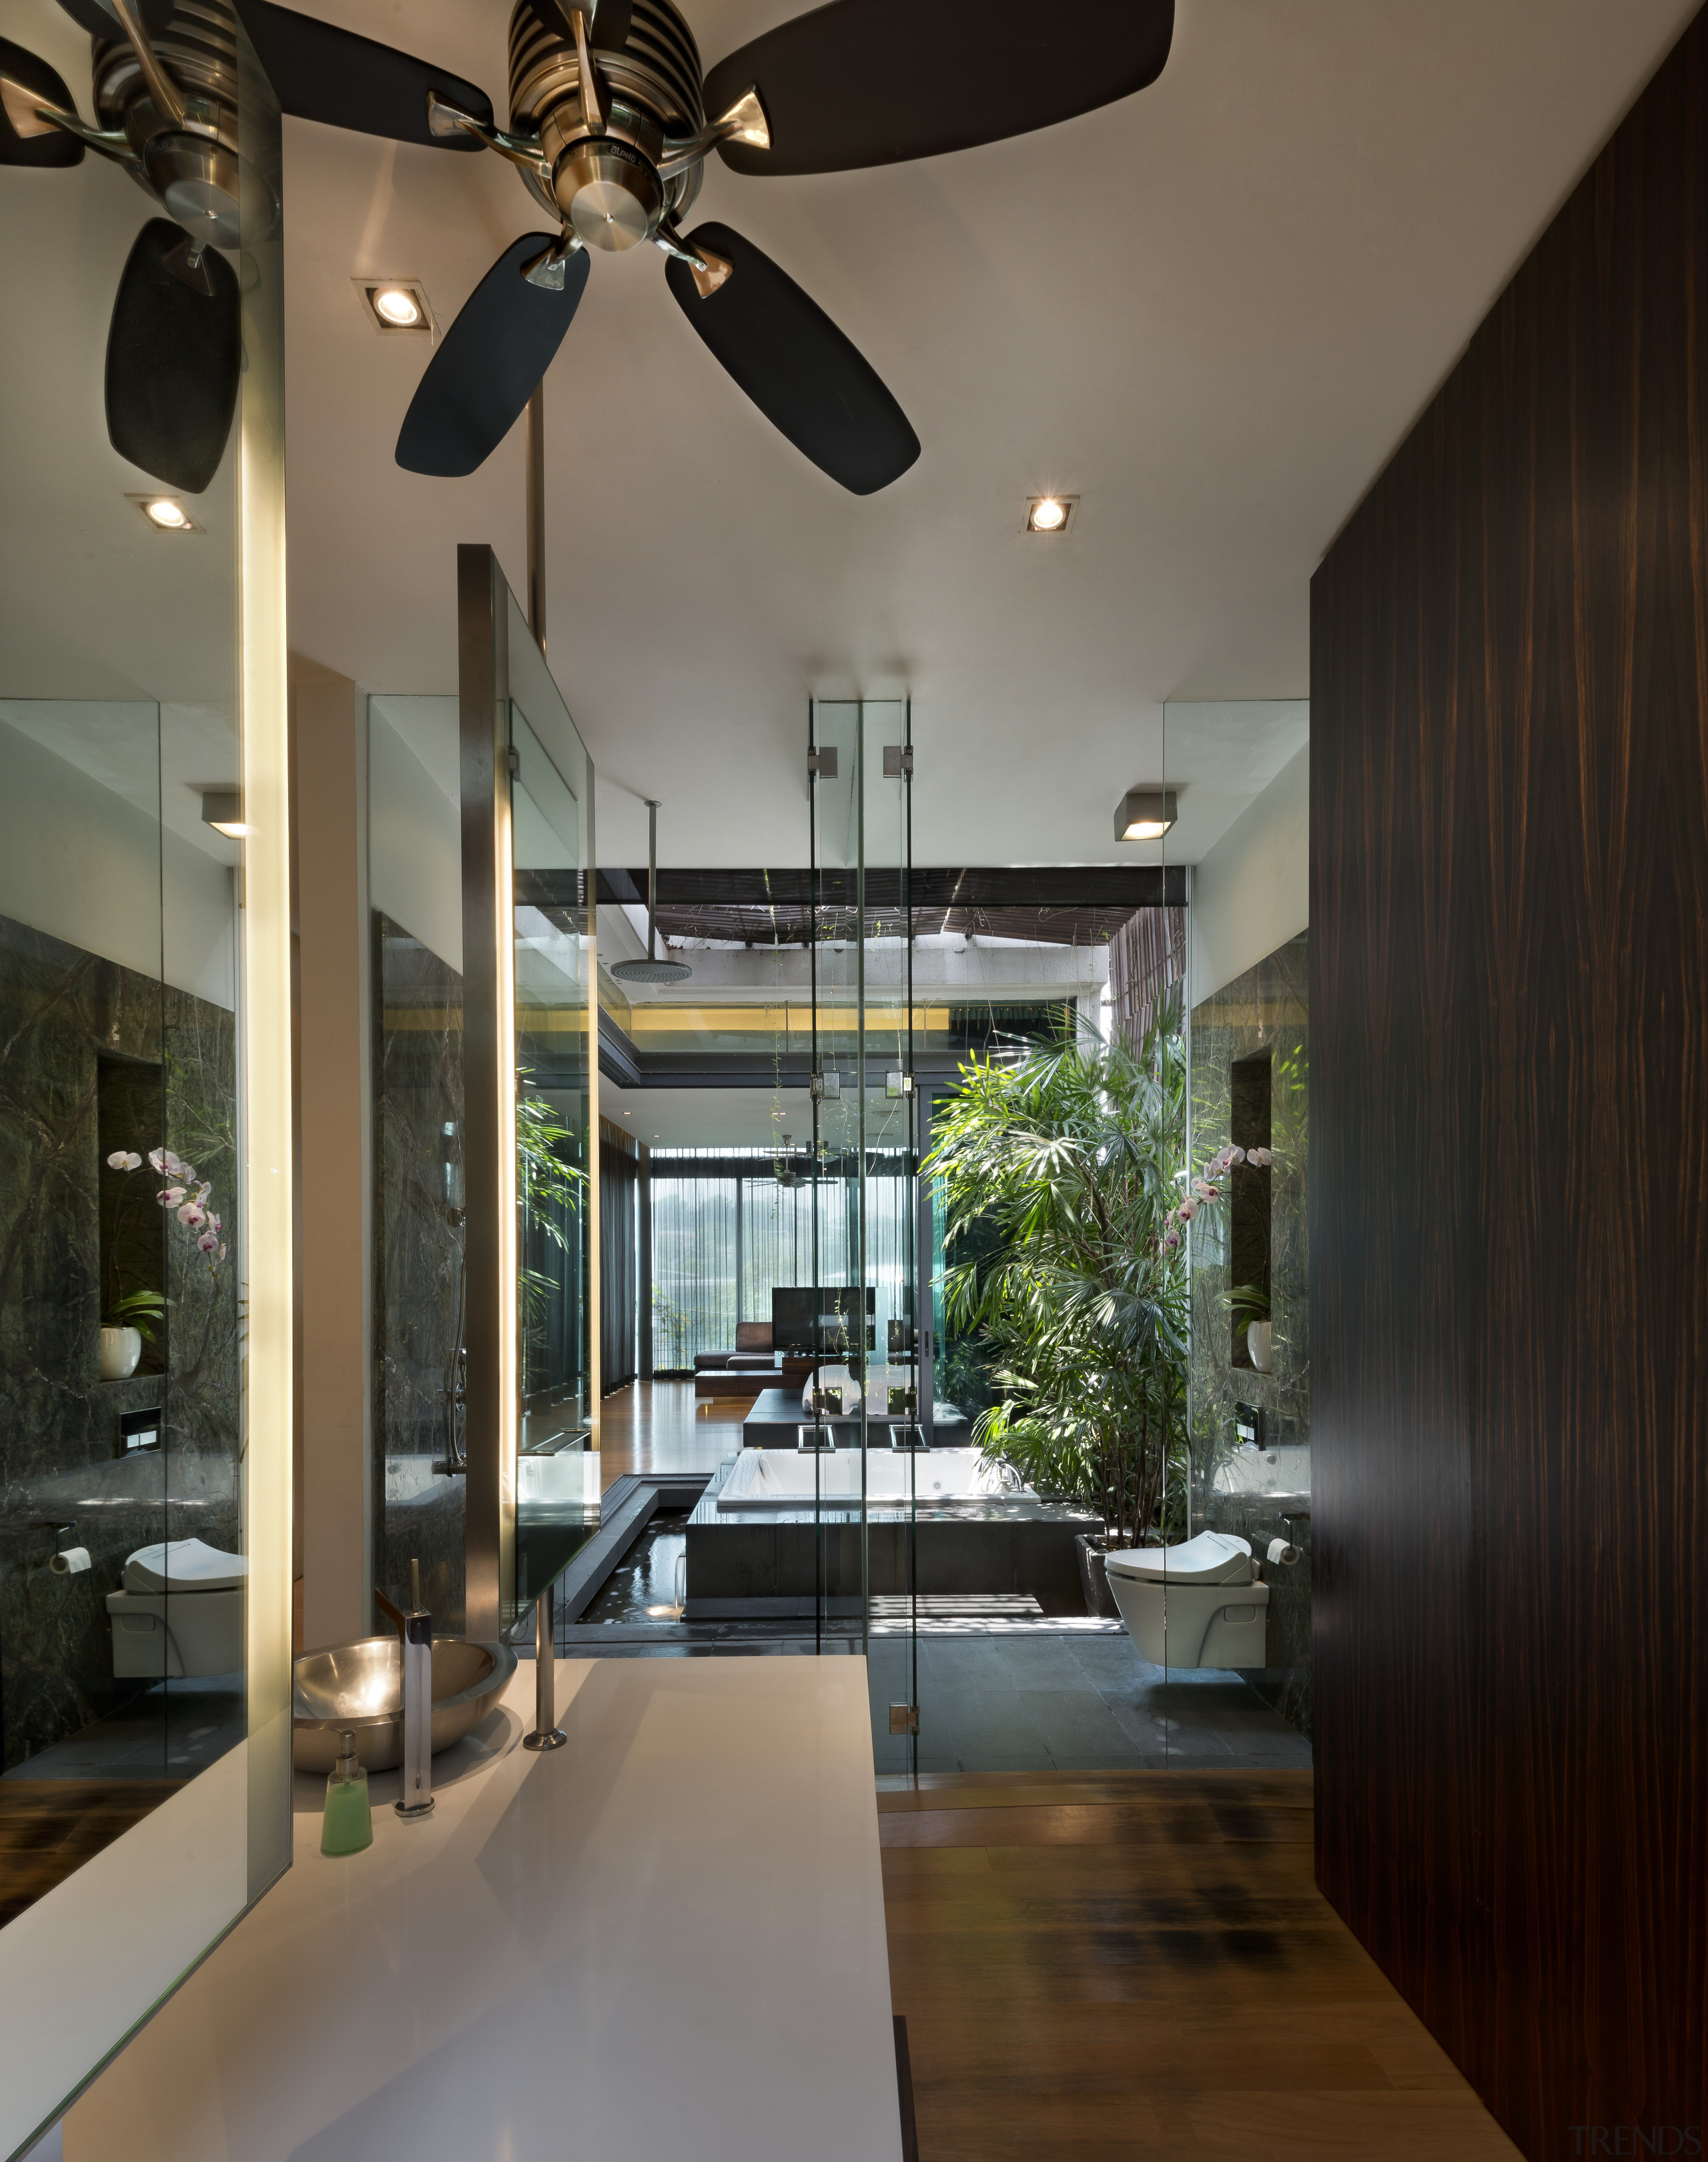 Glass walls allow a view right through this architecture, ceiling, condominium, home, house, interior design, living room, lobby, black, gray